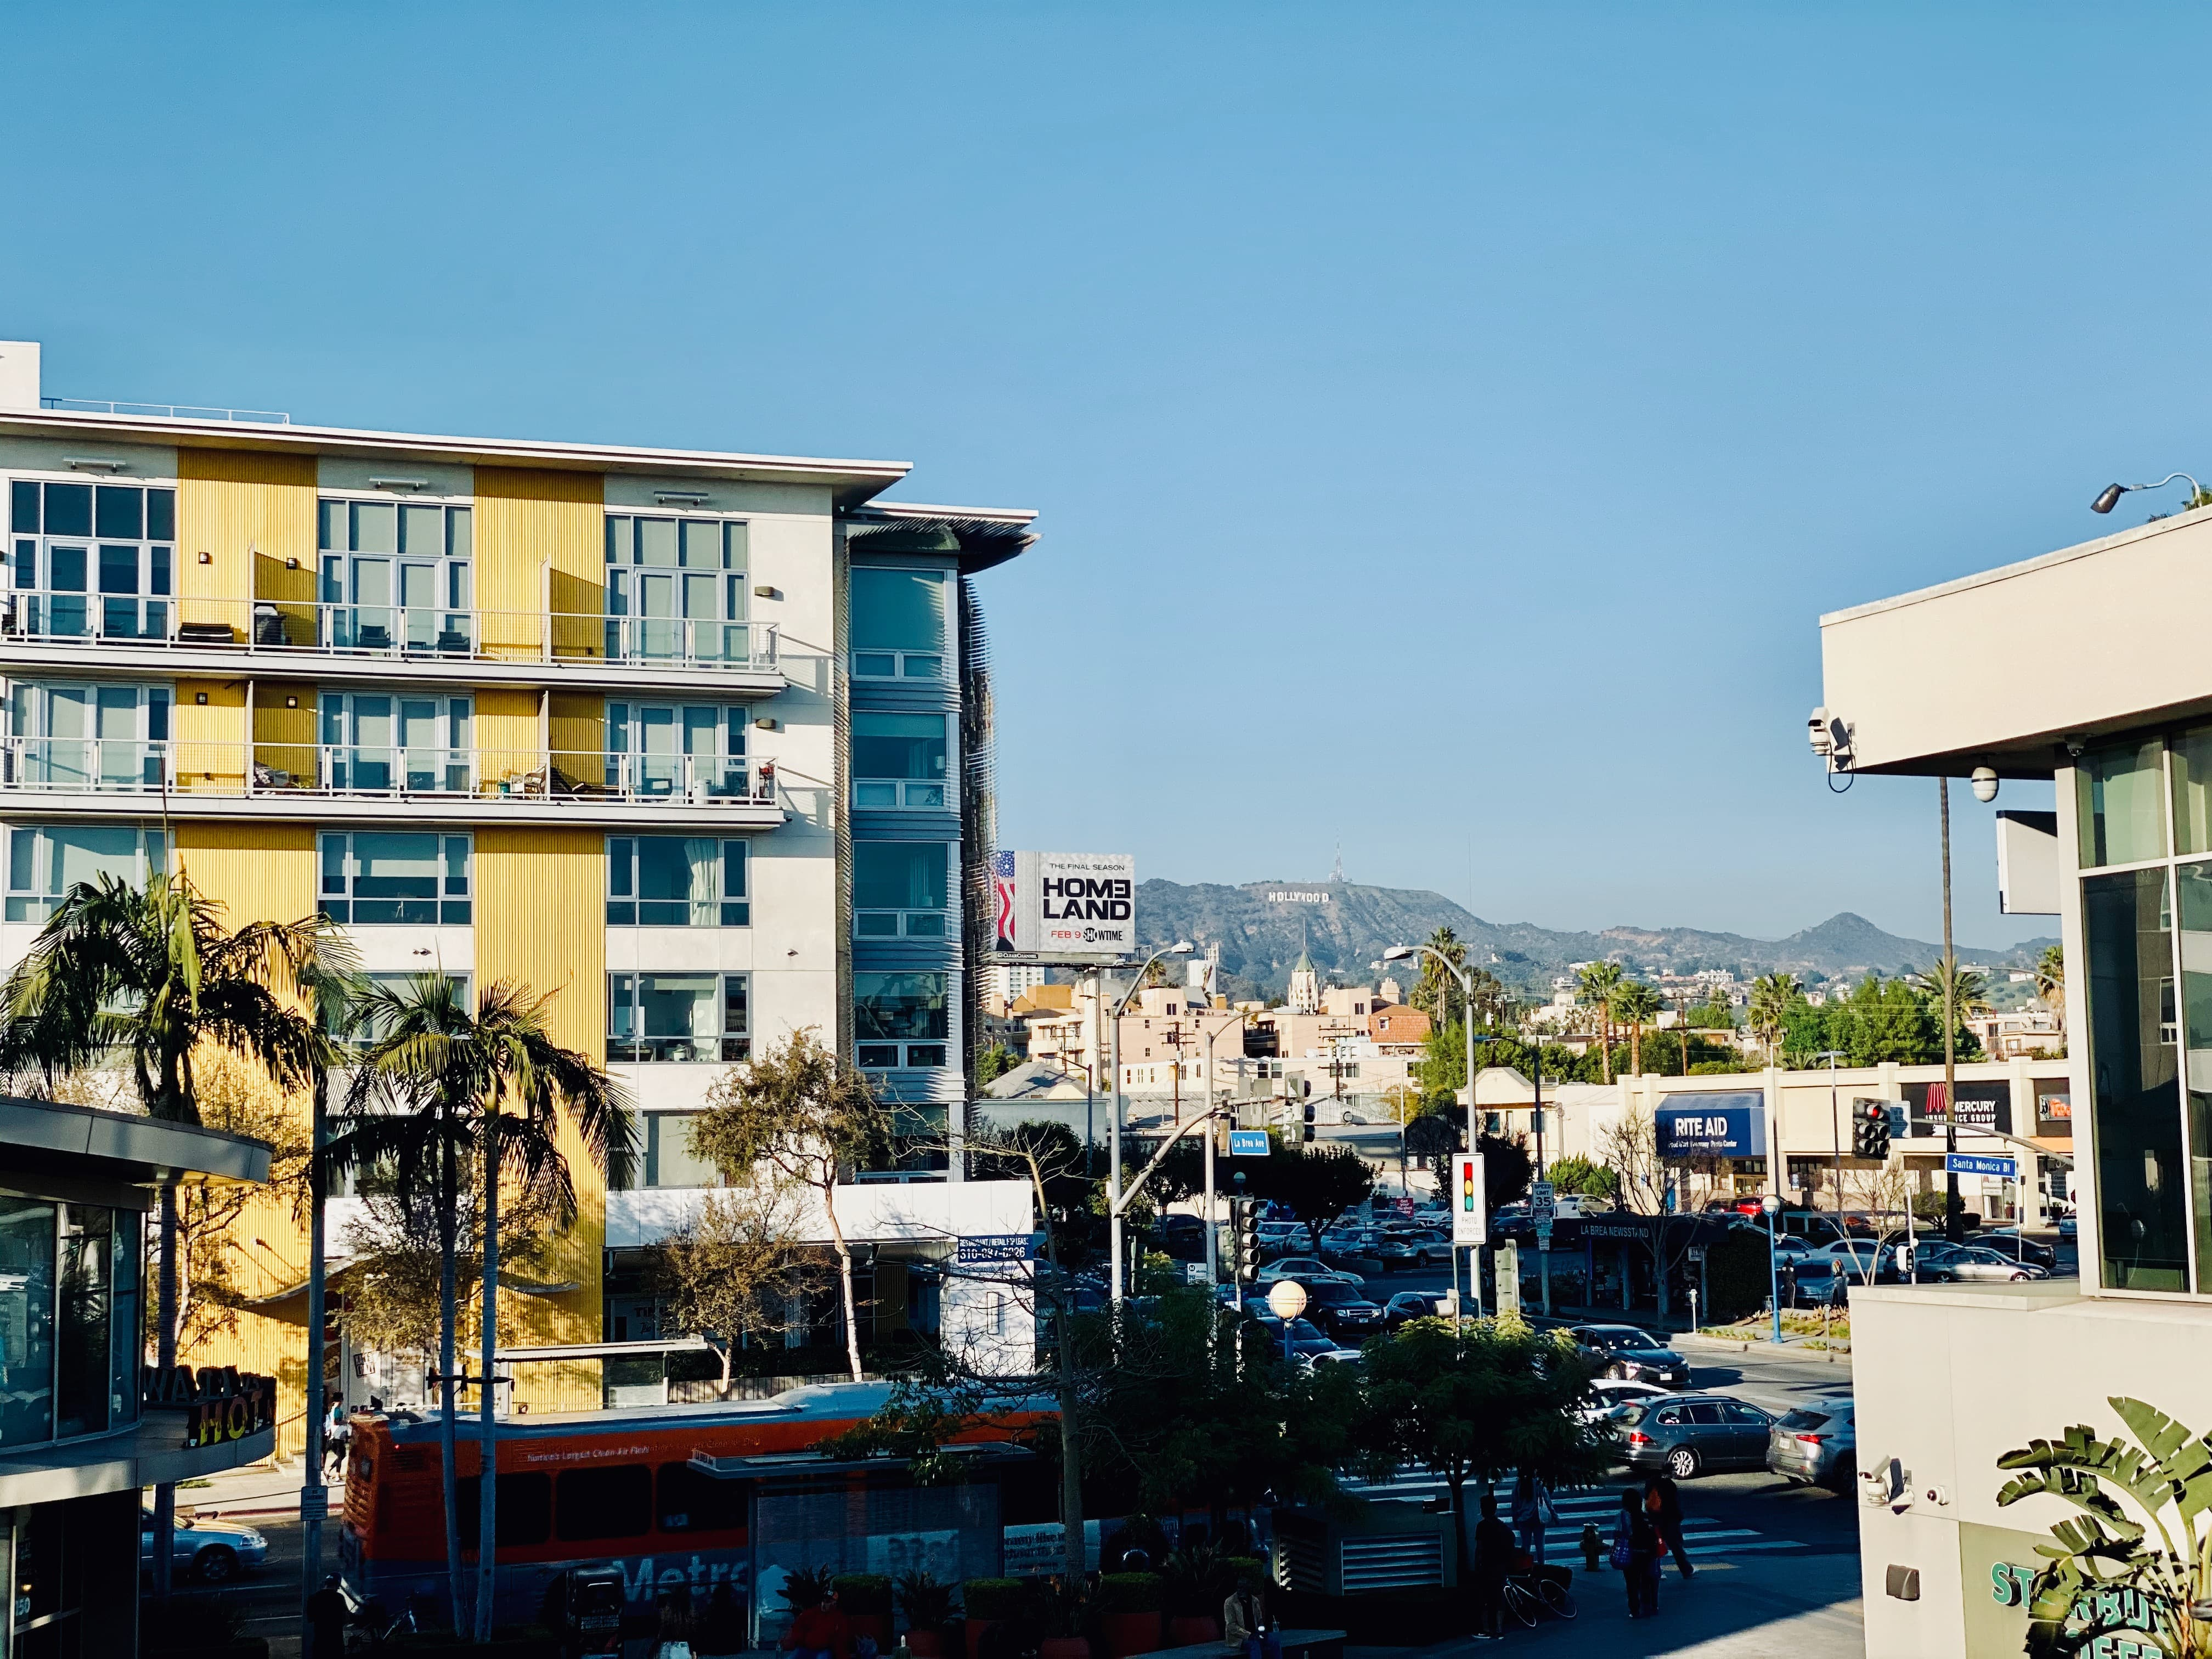 My apartment with the Hollywood sign in the background